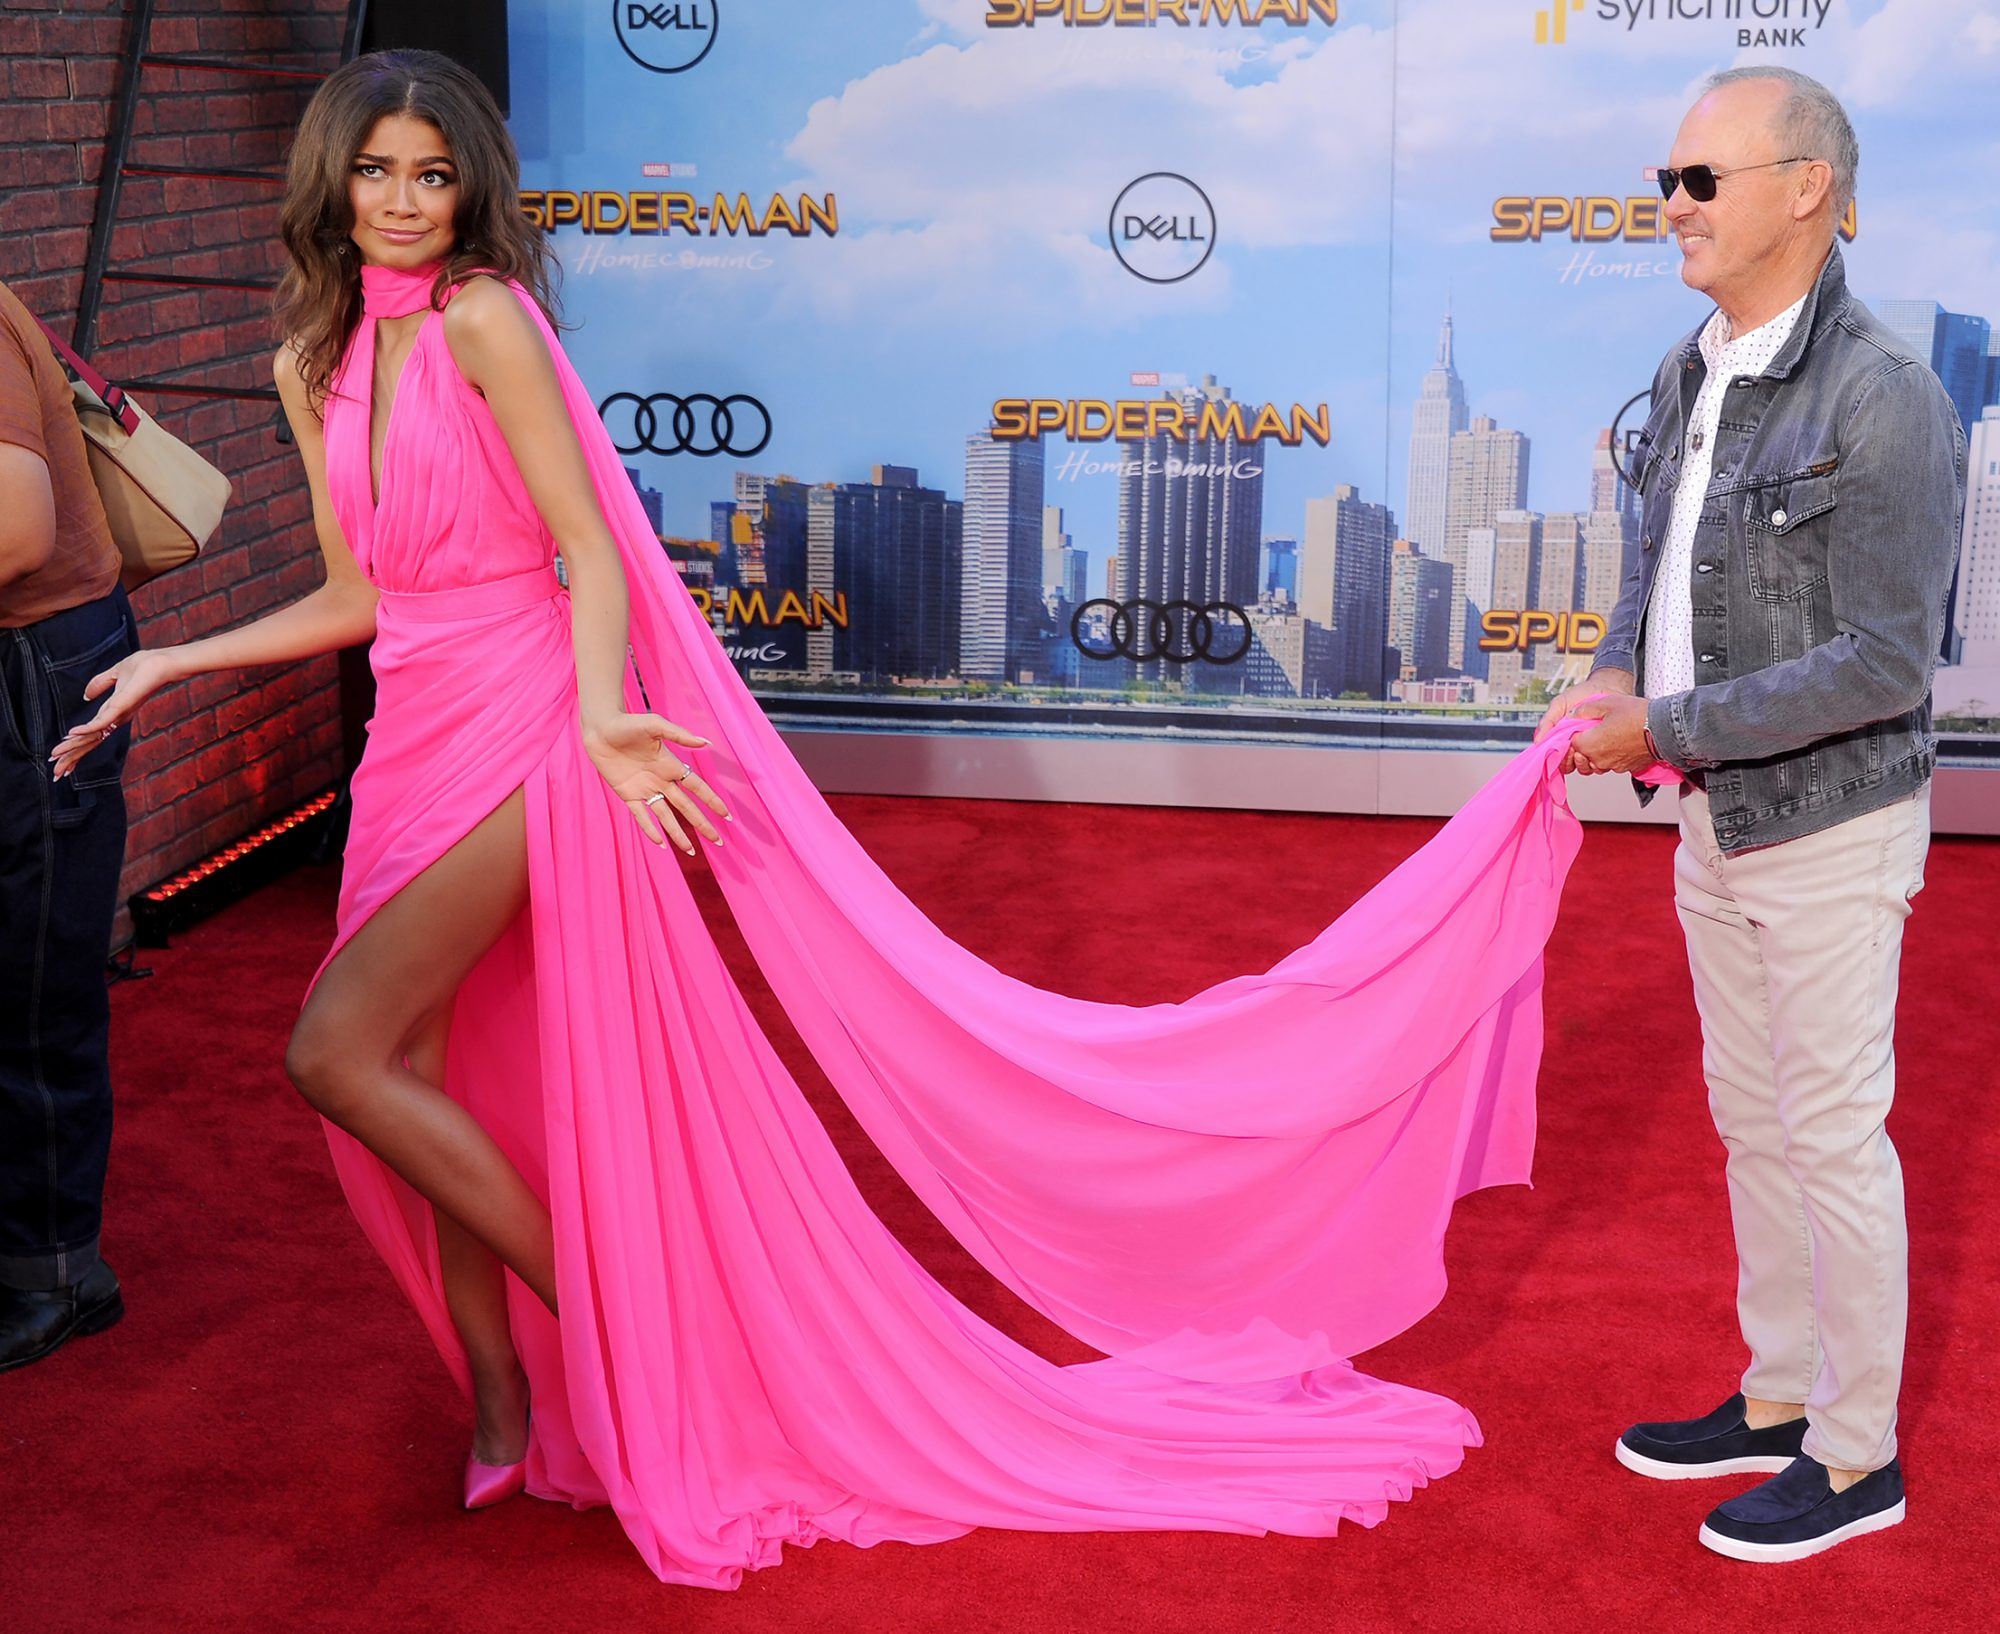 Michael Keaton and Zendaya - Embed